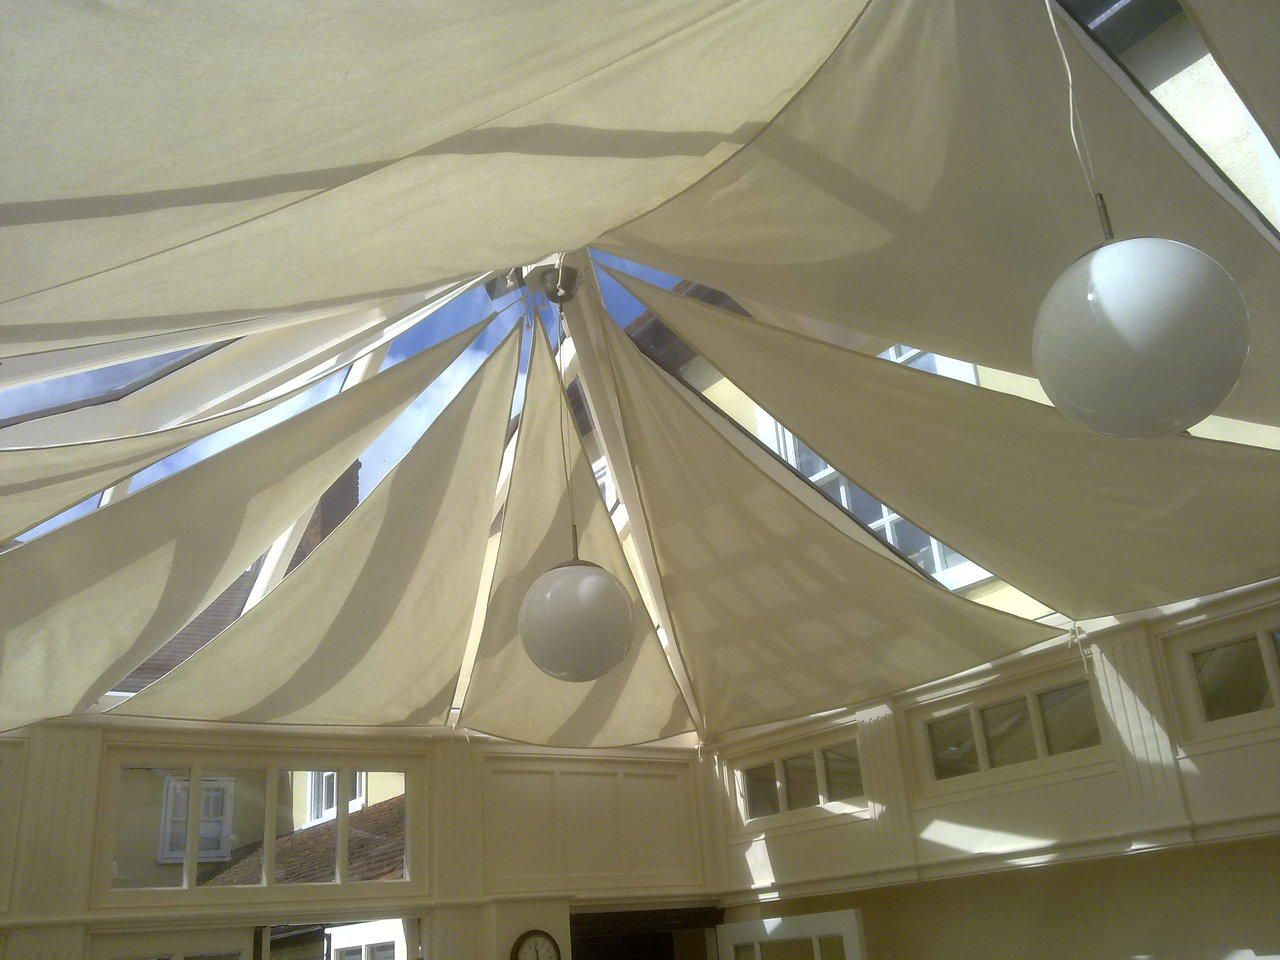 conservatory roof sails - Google Search | Design ...